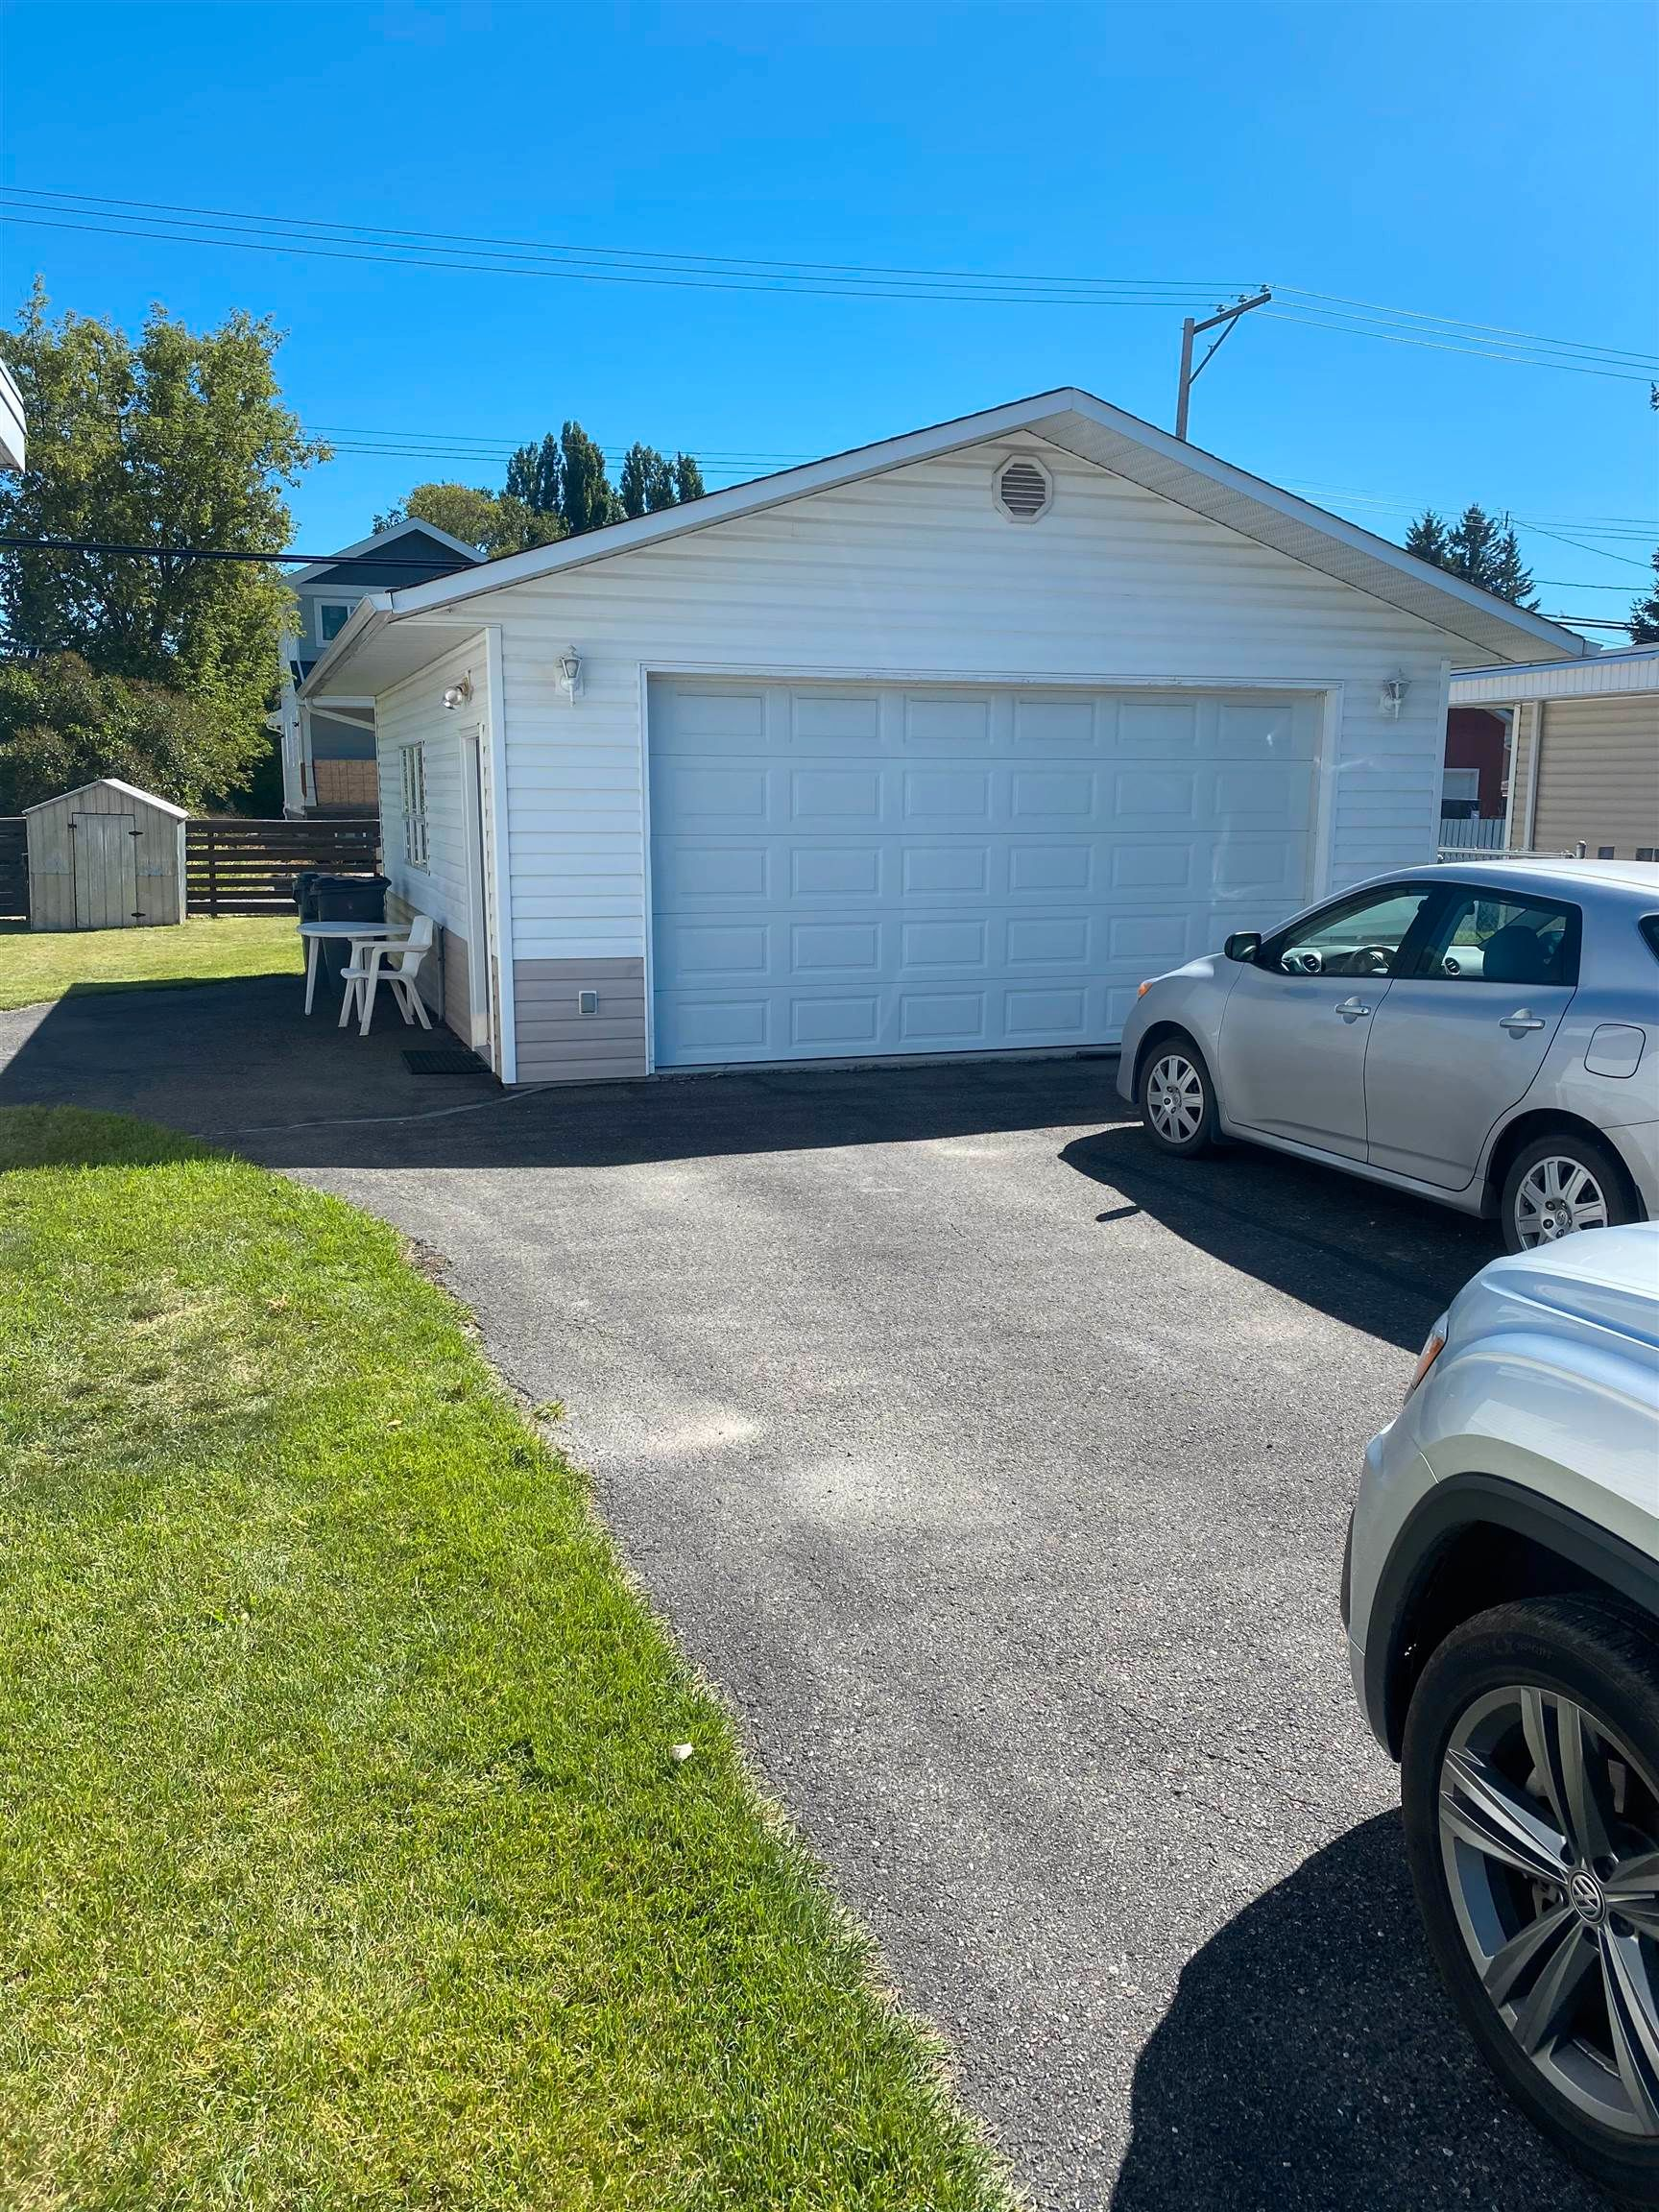 Photo 5: Photos: 346 - 352 CARNEY Street in Prince George: Central Duplex for sale (PG City Central (Zone 72))  : MLS®# R2609479